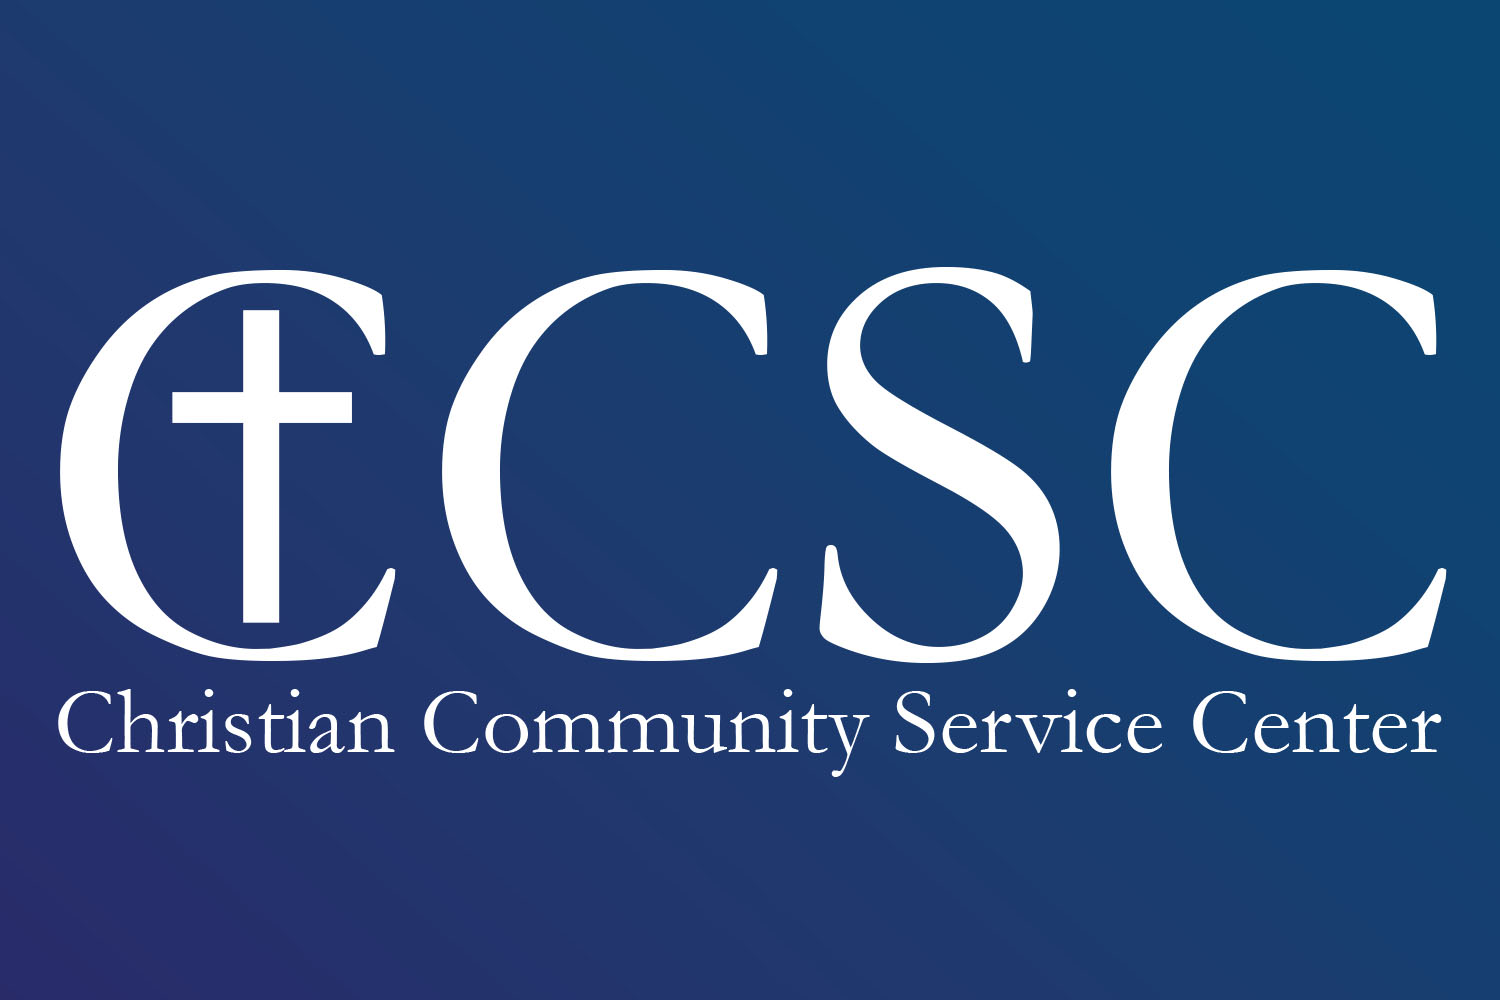 Christian Community Service Center (CCSC) - We are one of CCSC's partner churches. One of the ways we support CCSC is through regular food and clothing drives throughout the year. The items collected benefit people in need in southwest Houston. Our 2019 drives will be held on April 27-28, August 24-25, and November 23-24.